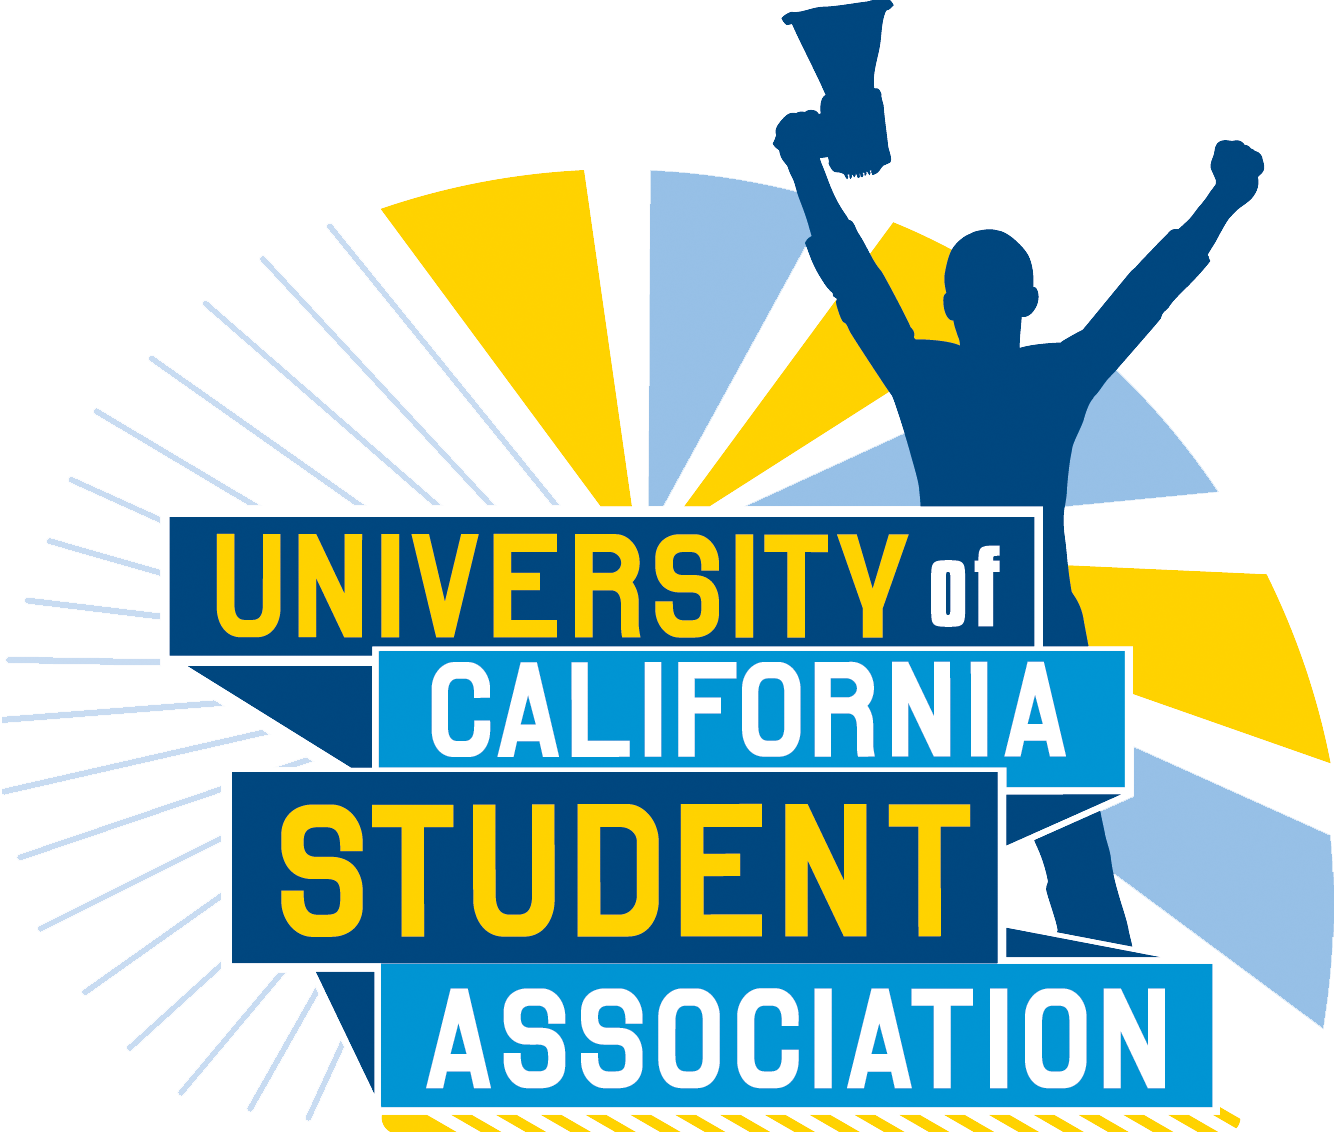 University of California Student Association